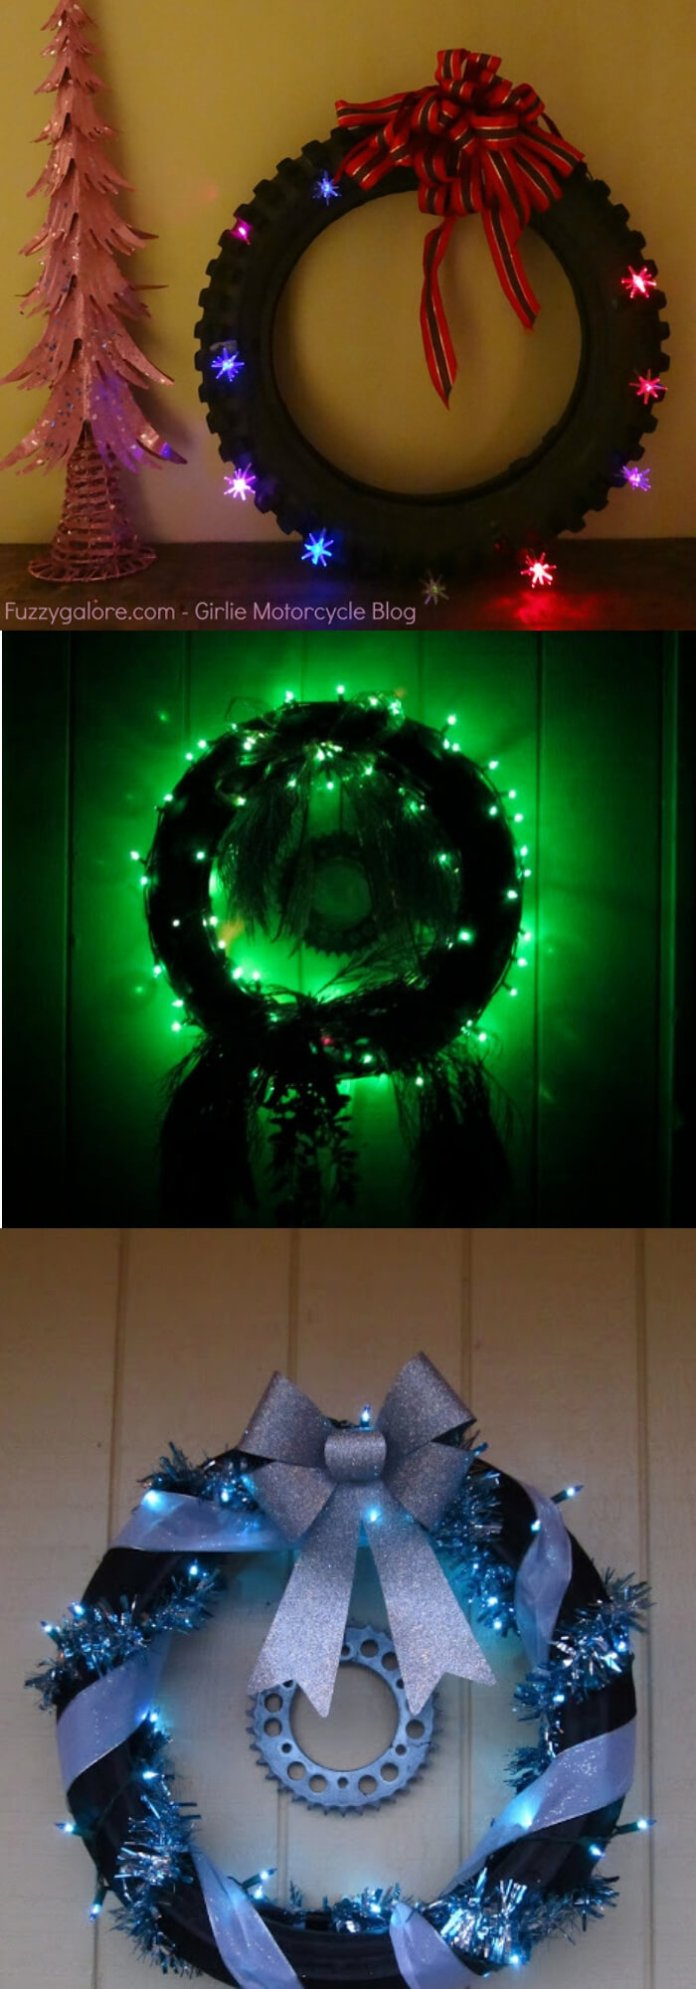 Knobby Tire Christmas wreath | Best Recycled Tire Christmas Decoration Ideas | FarmFoodFamily.com